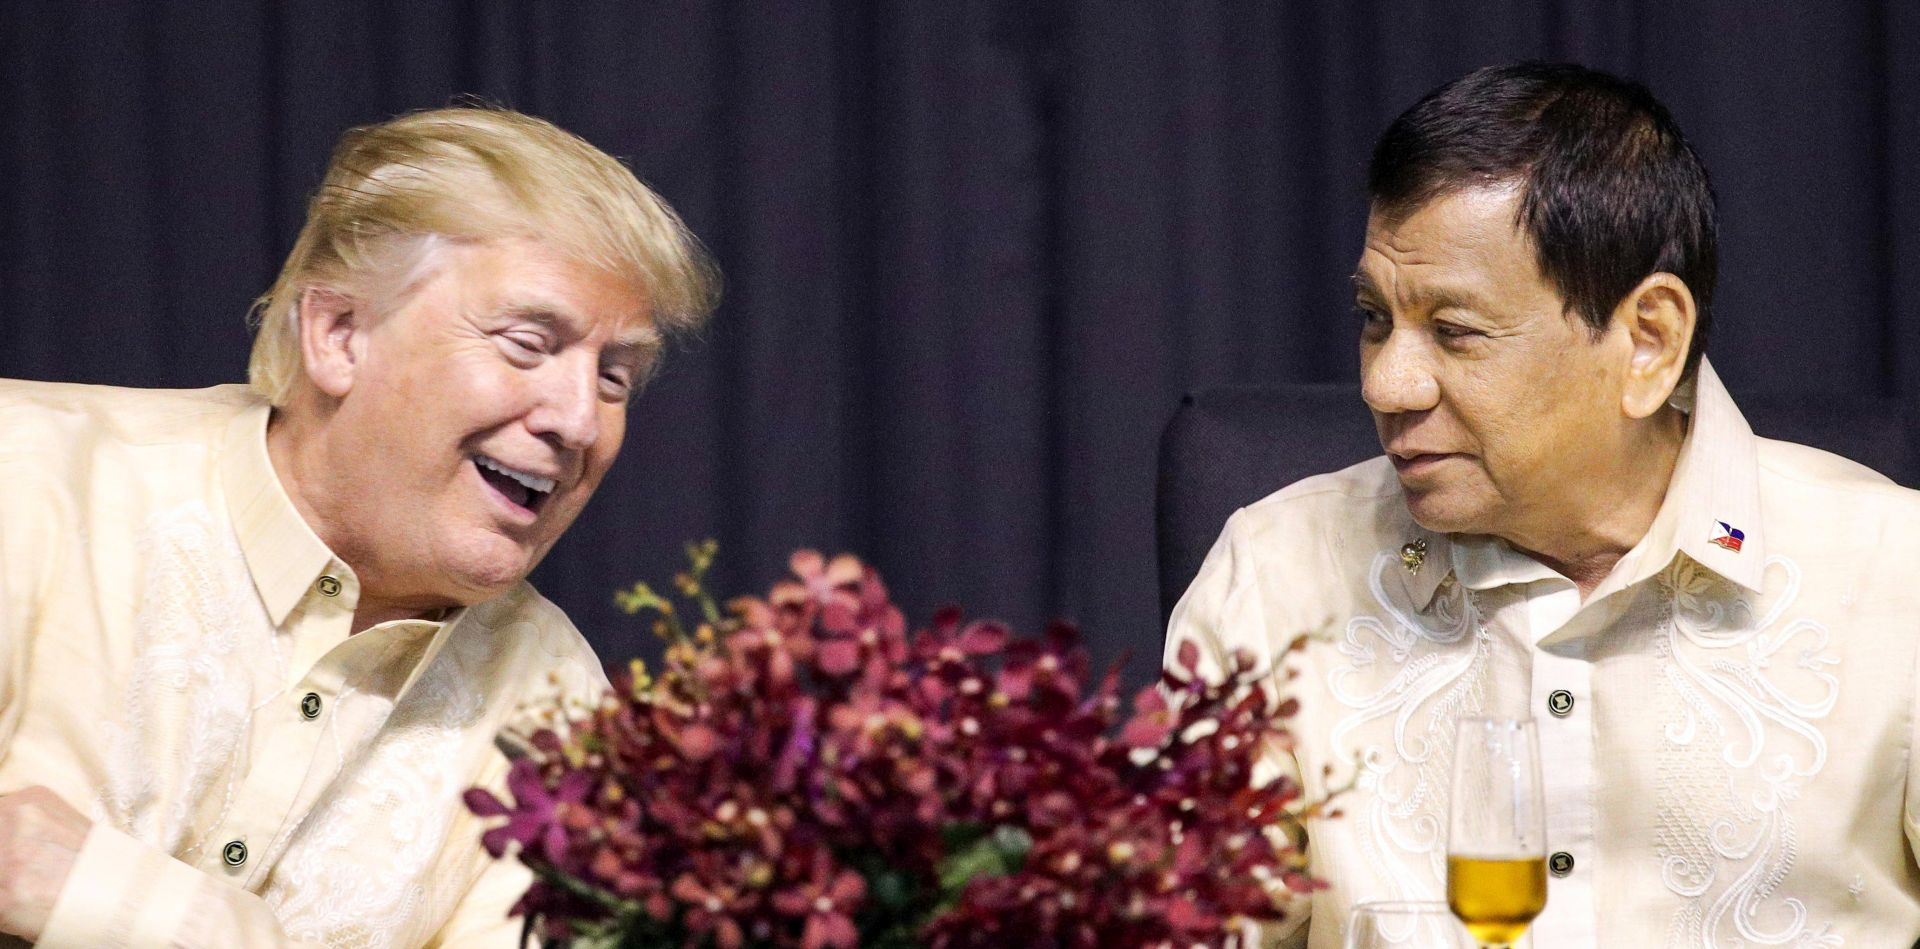 TRUMP 'S Duterteom imam sjajan odnos'